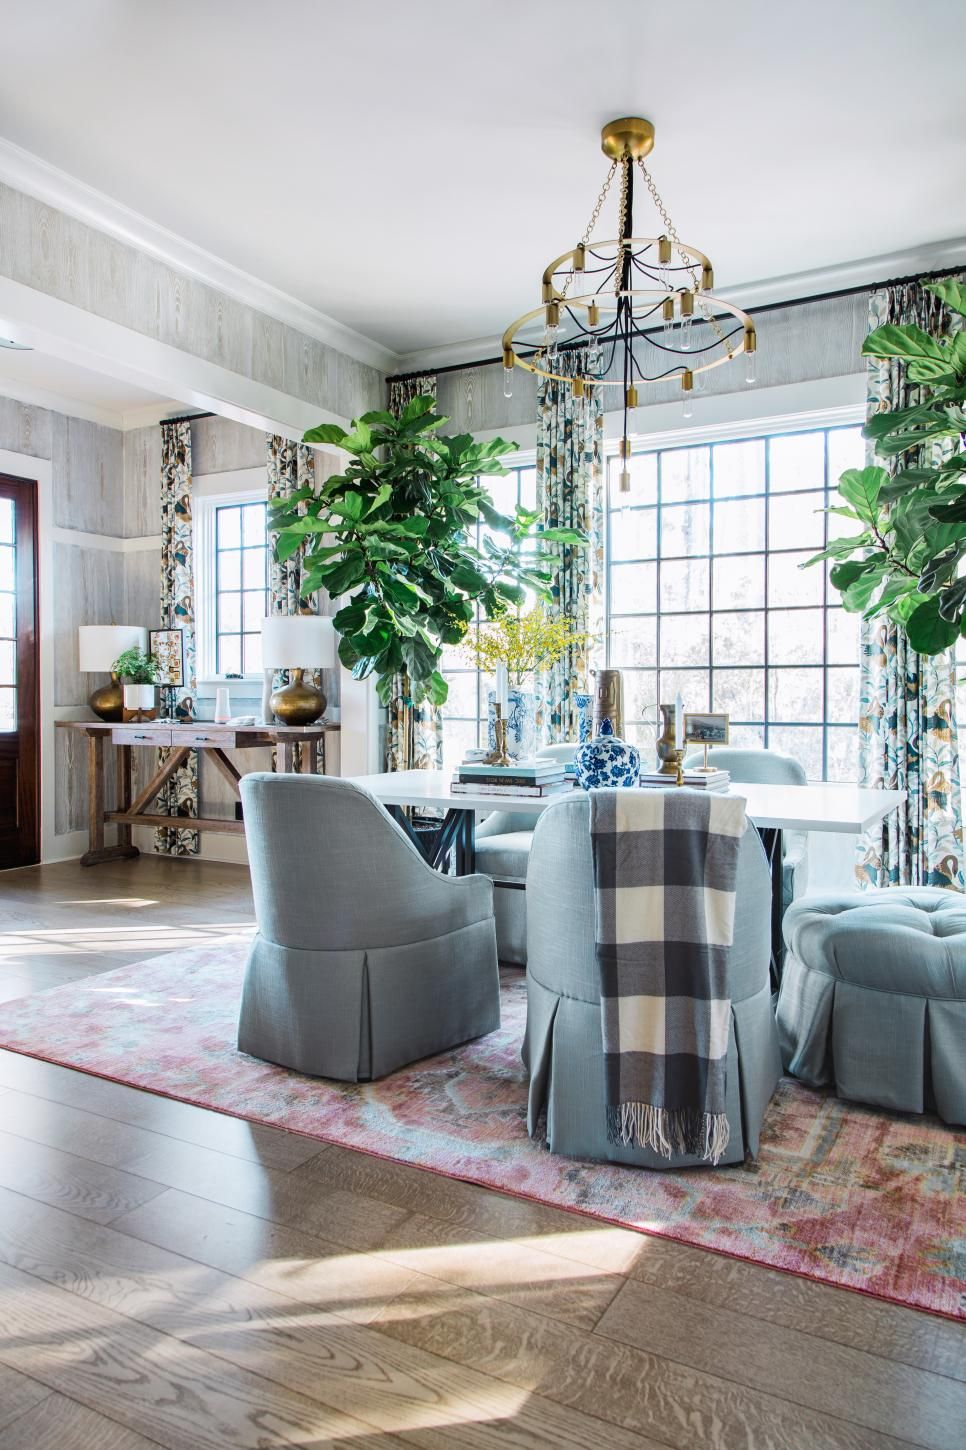 Pictures of the HGTV Smart Home 2018 Backyard | Lowcountry ... on contemporary hollywood hills homes, christmas beautiful homes, beautiful country homes, beautiful estate homes, beautiful dream homes, beautiful plantation homes, design beautiful homes, beautiful prairie homes, travel beautiful homes, carpet styles for homes, house beautiful homes,